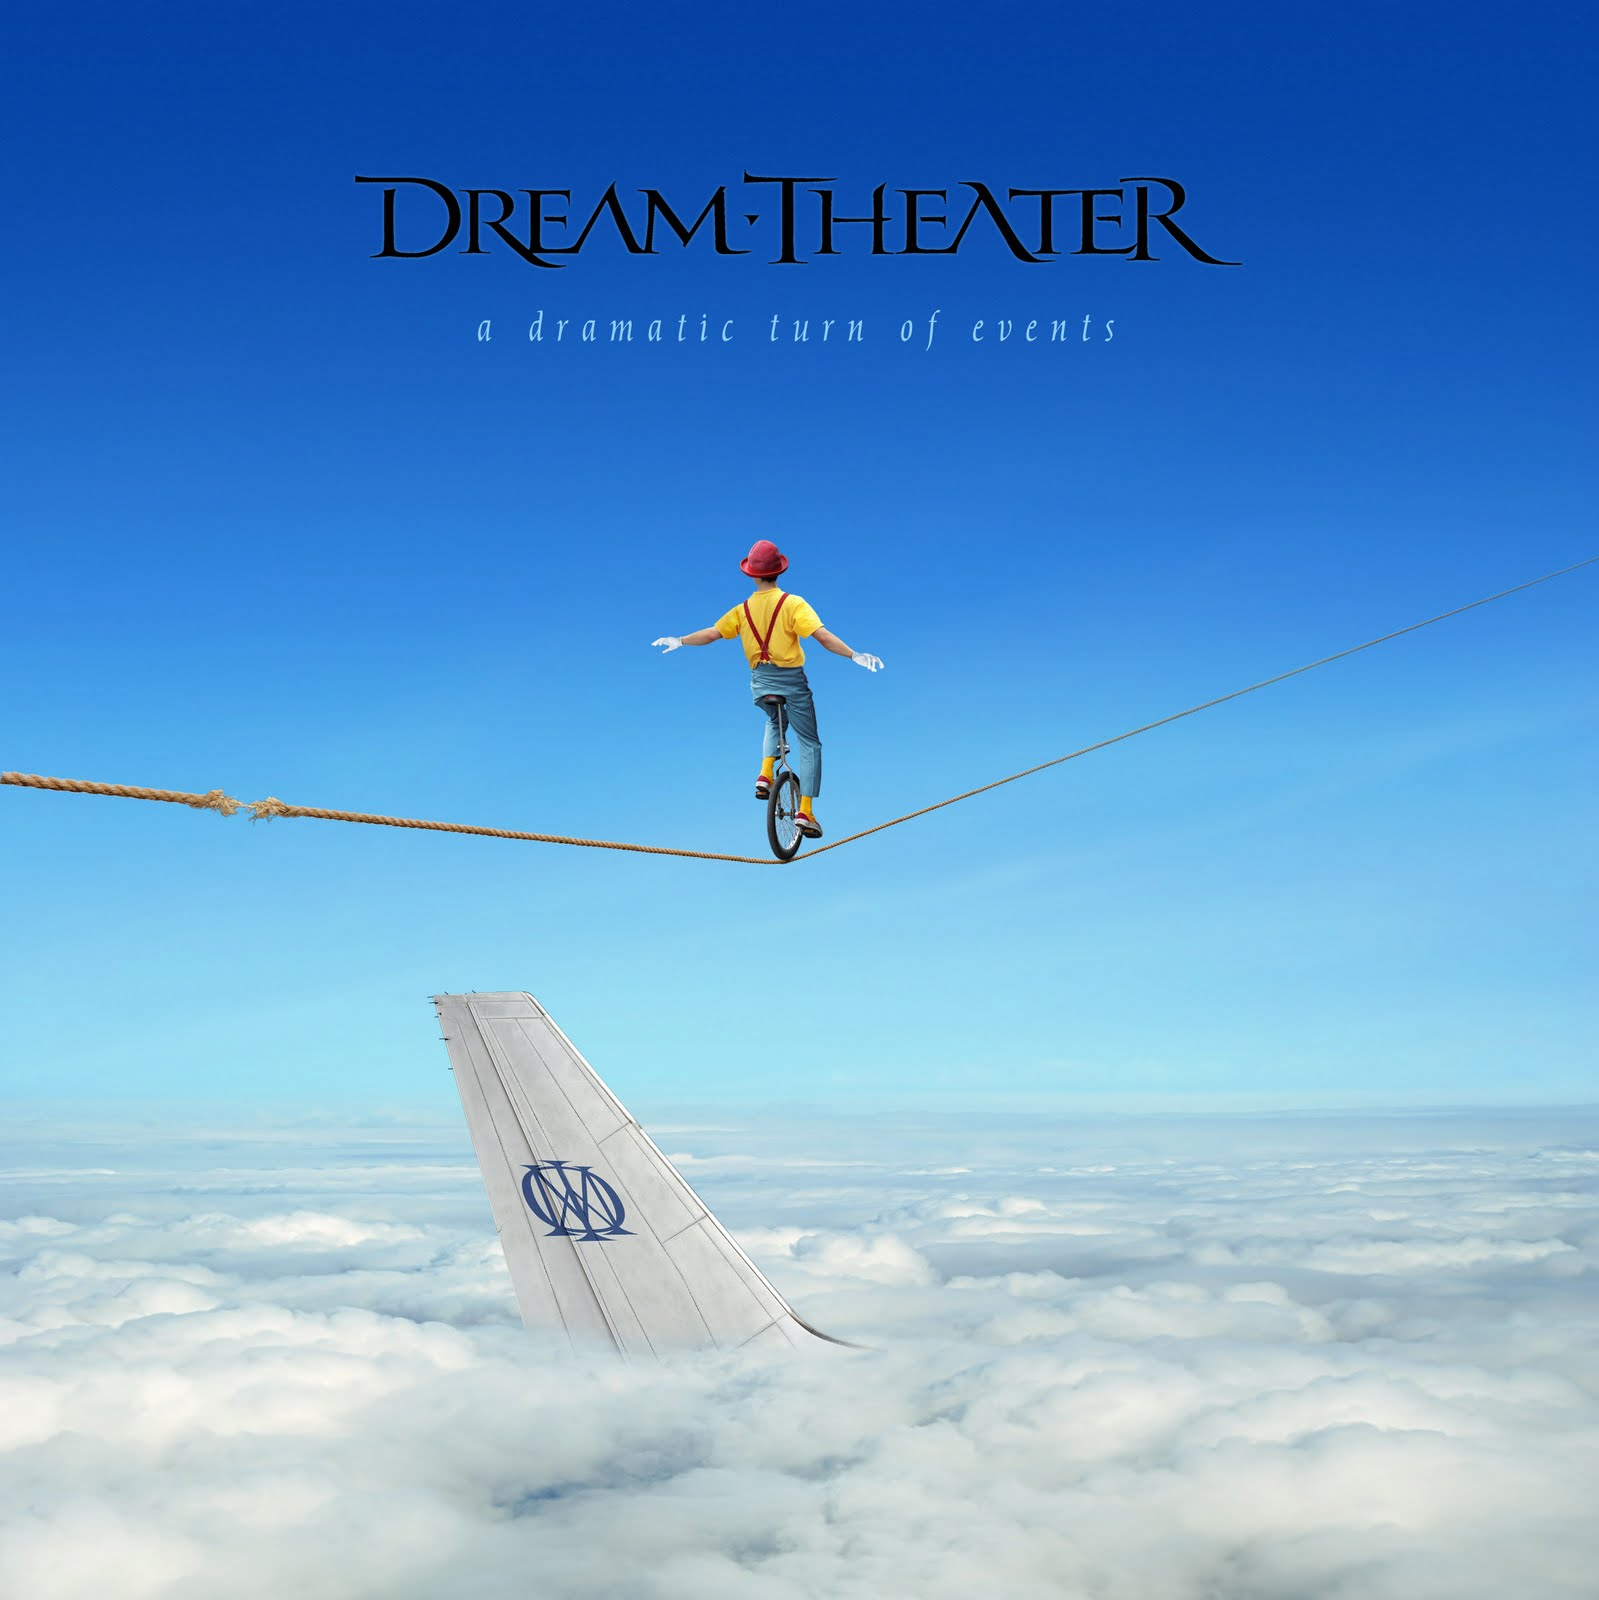 436 Best Dream Theaters Images On Pinterest: Dream Theater A Dramatic Turn Of Events (2011